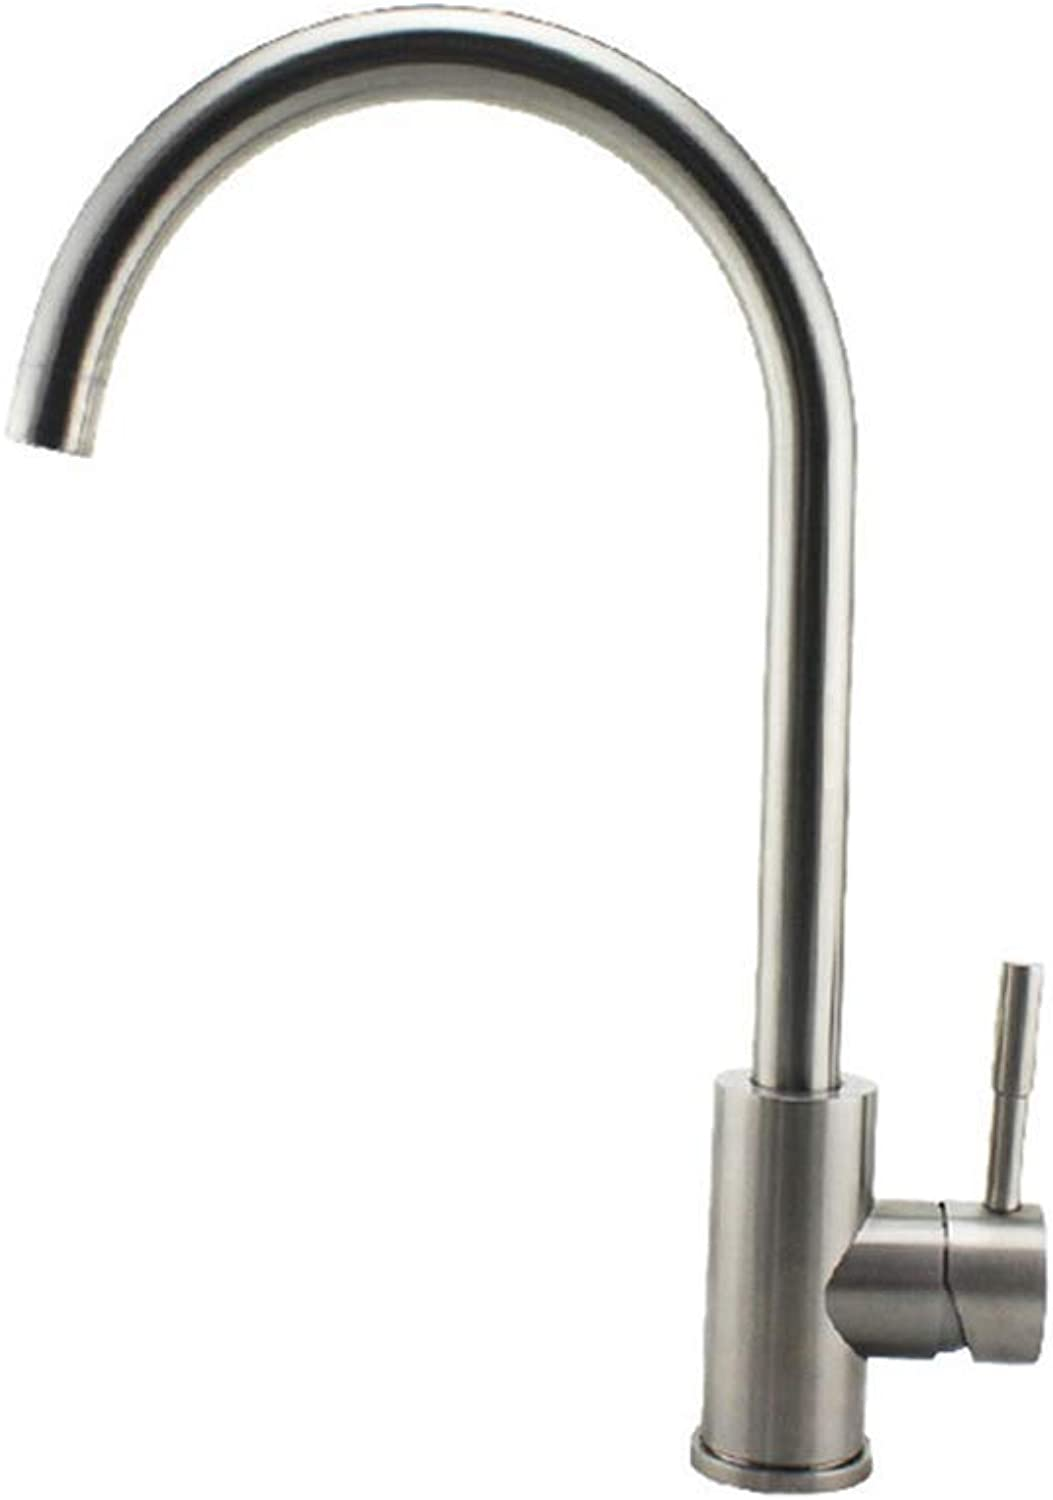 Oudan Kitchen Cold Kitchen Faucet Sus304 Stainless Steel Sink Faucet redatably (color   -, Size   -)